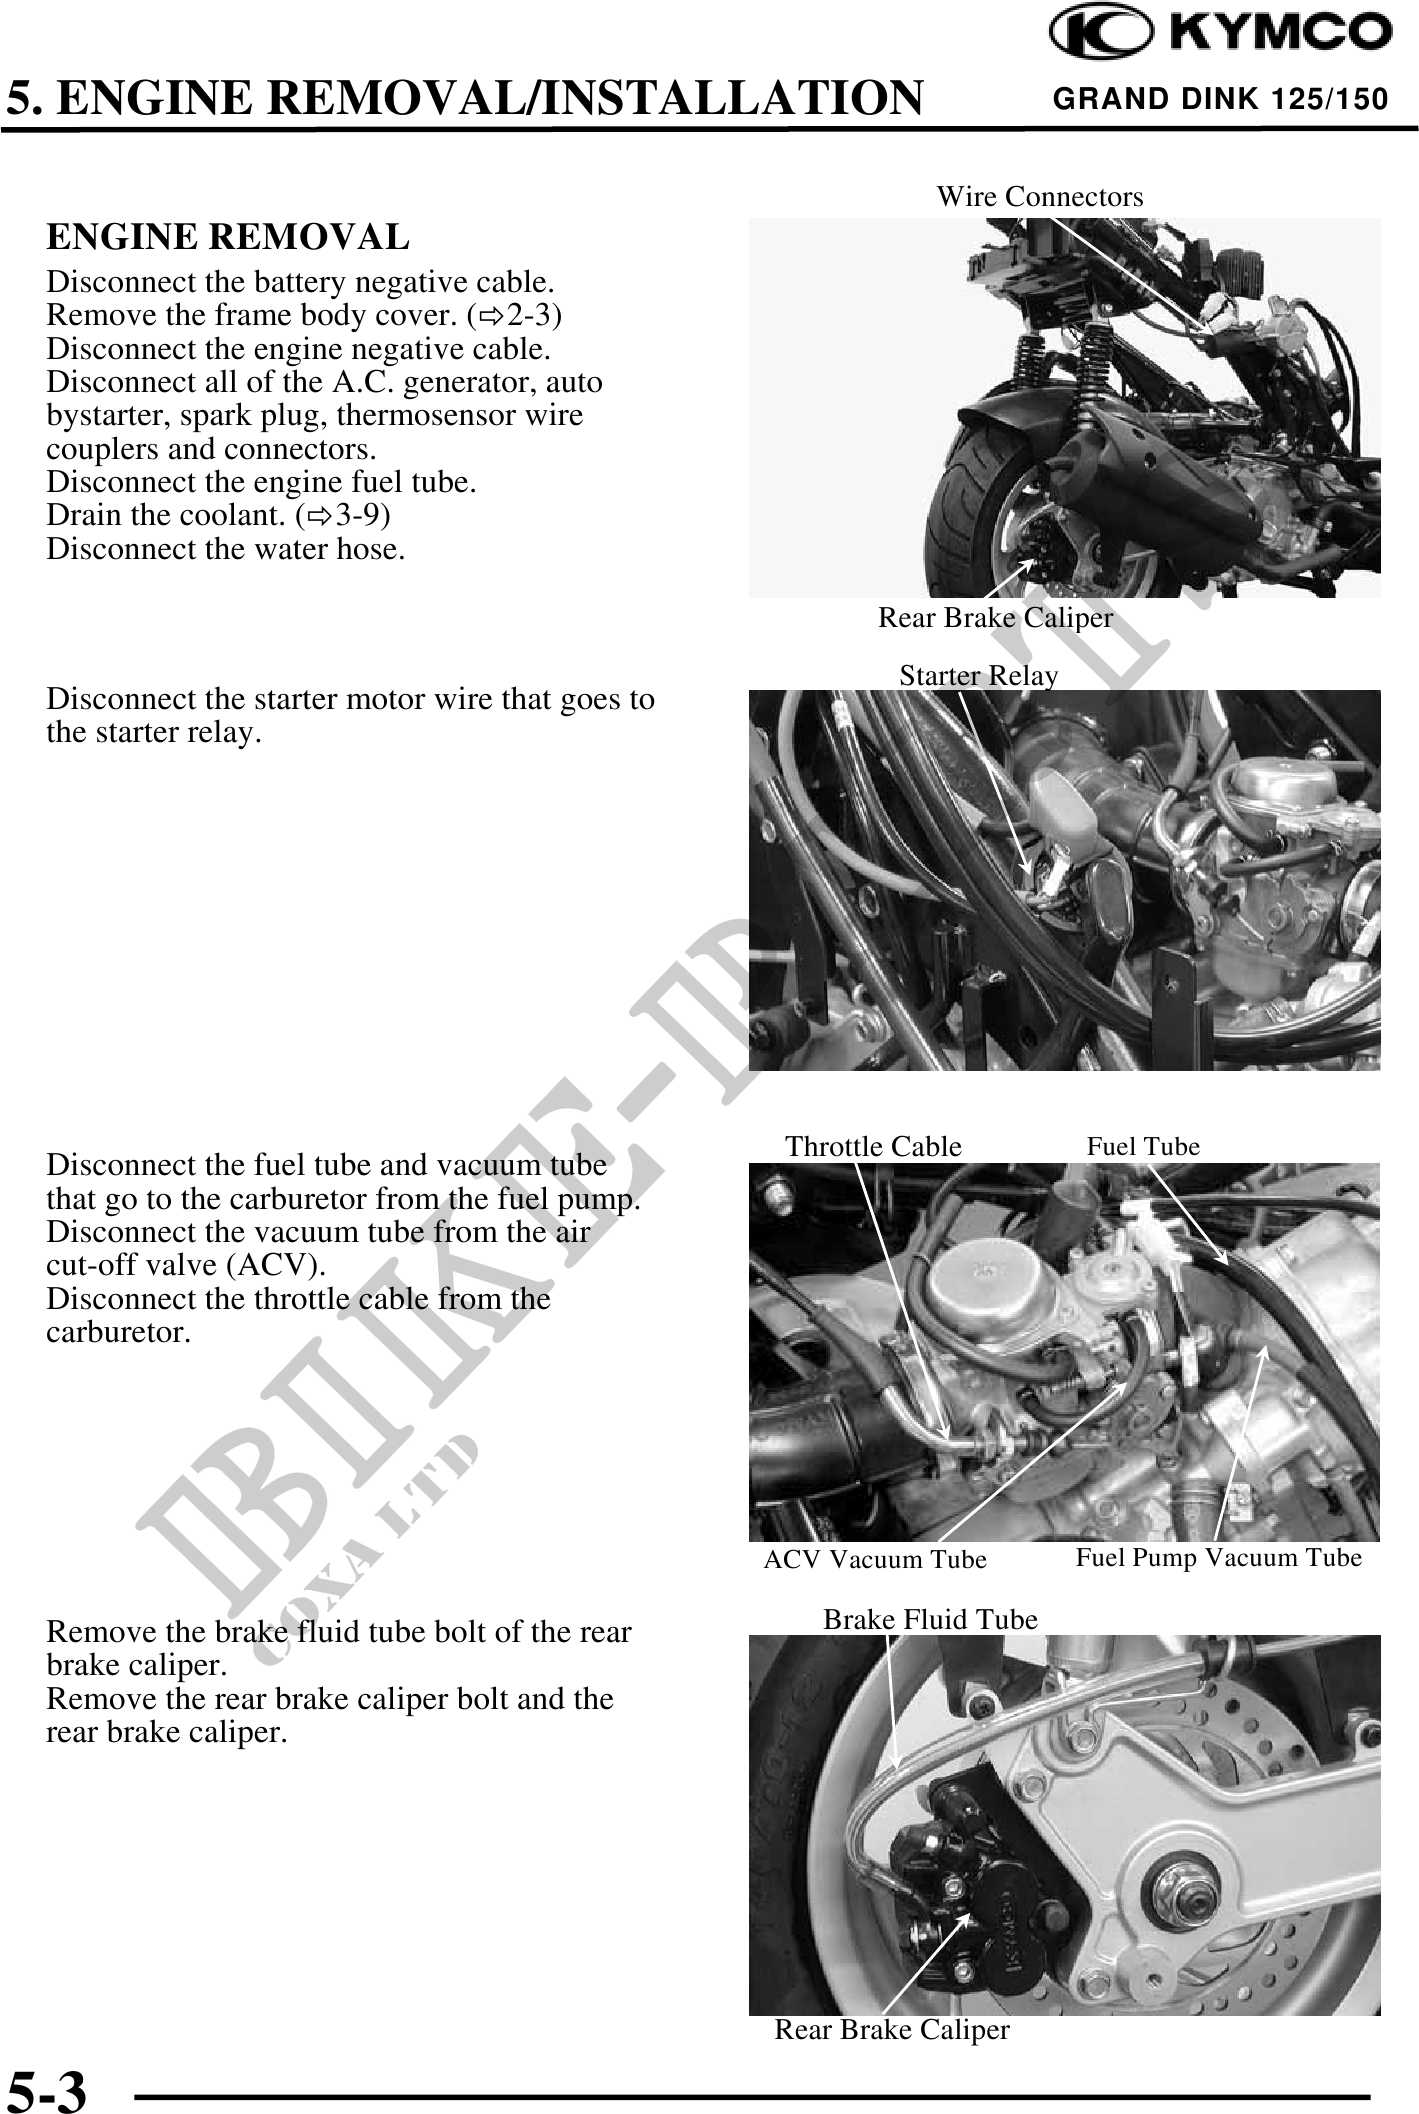 KYMCO GRAND DINK 125 150 WORKSHOP SERVICE REPAIR MANUAL